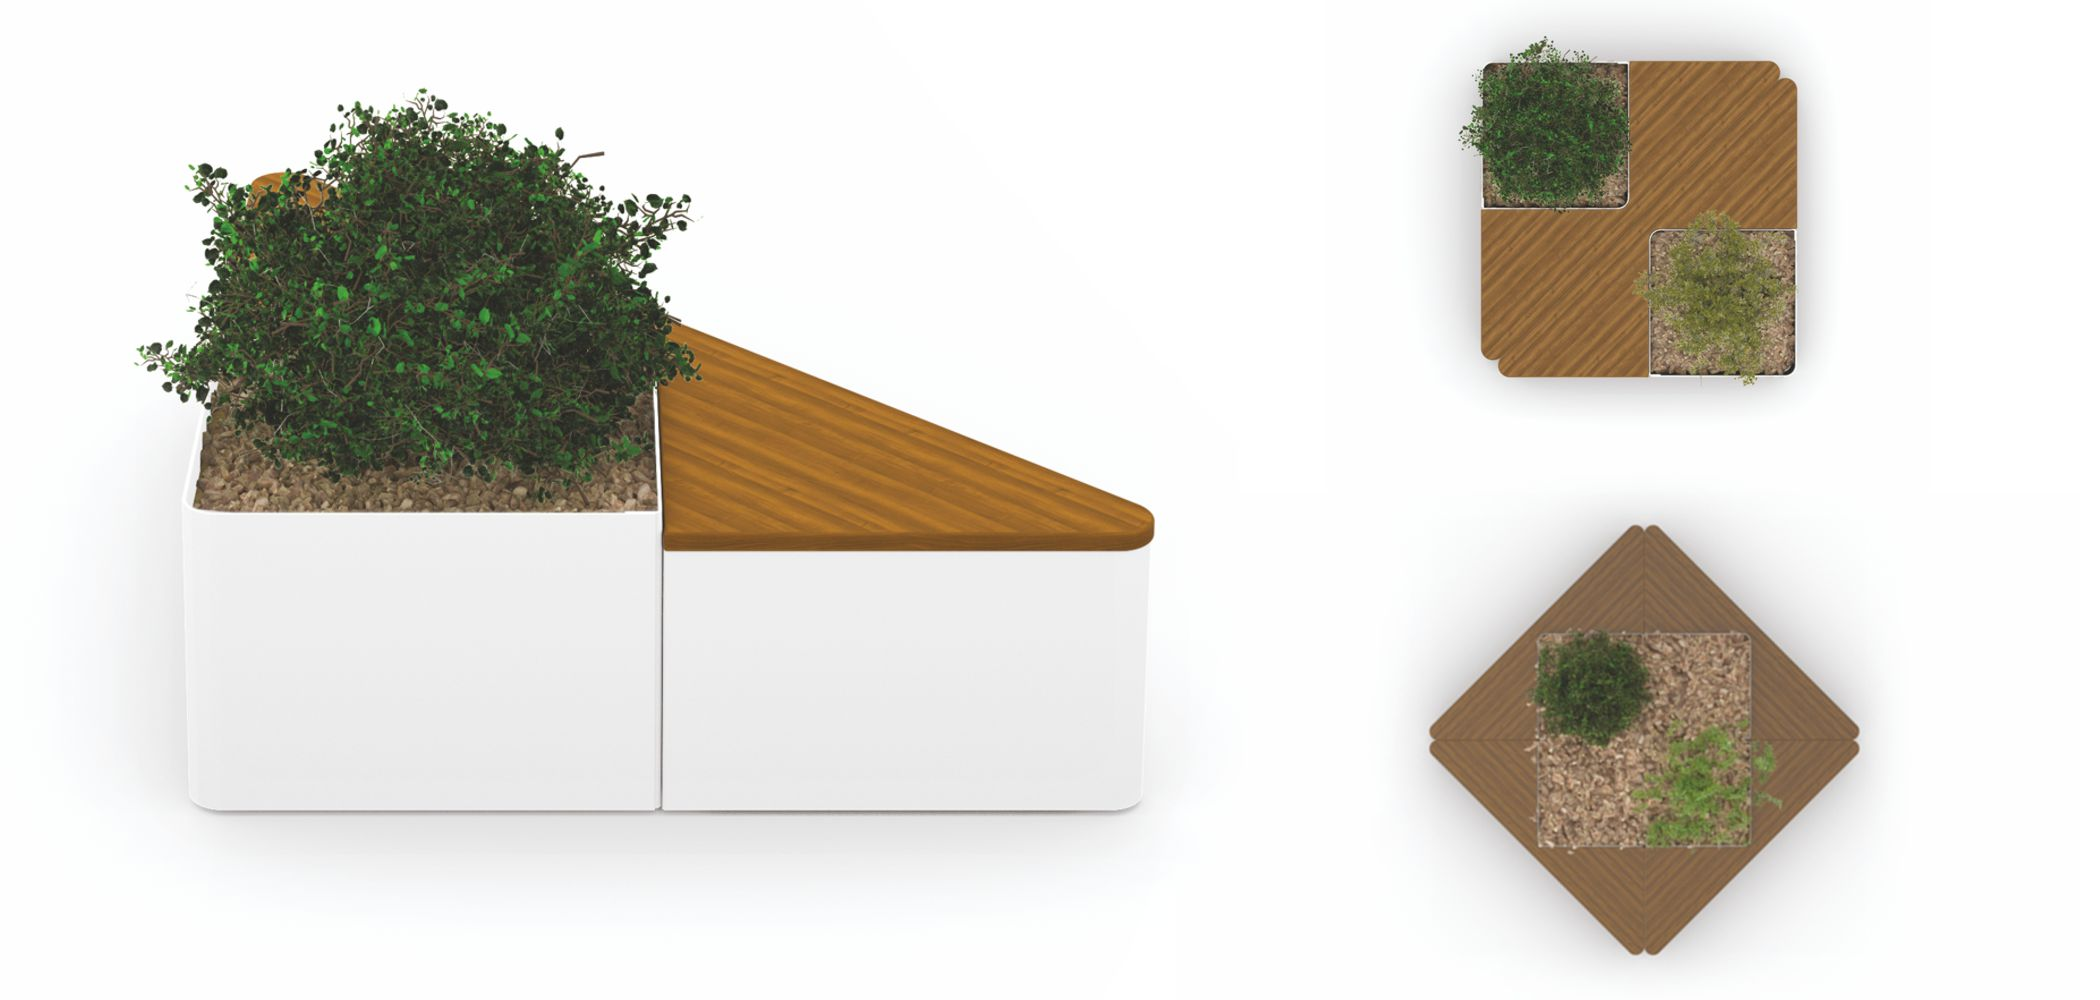 TRIANGLE MODULAR FLOWER BOXES